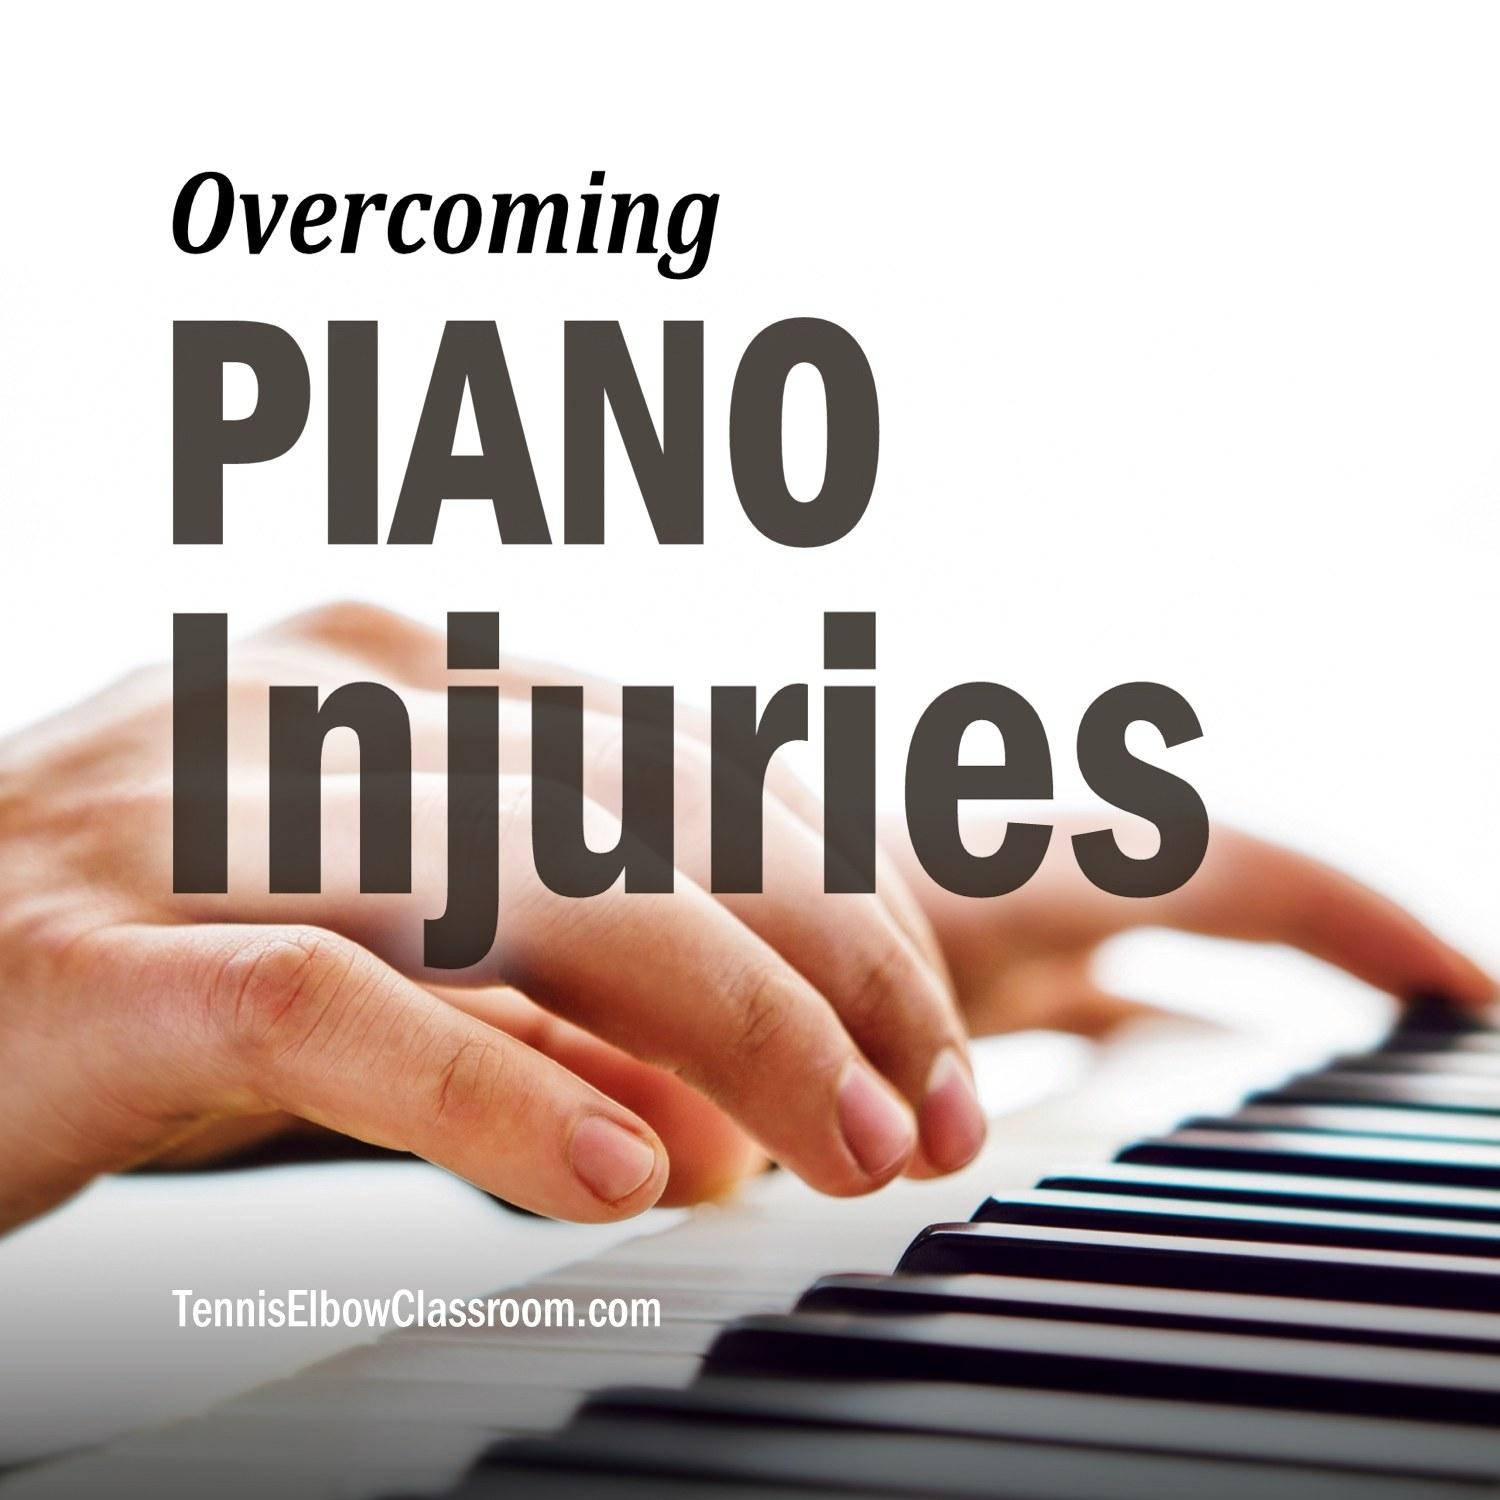 Piano Injuries Podcast Cover